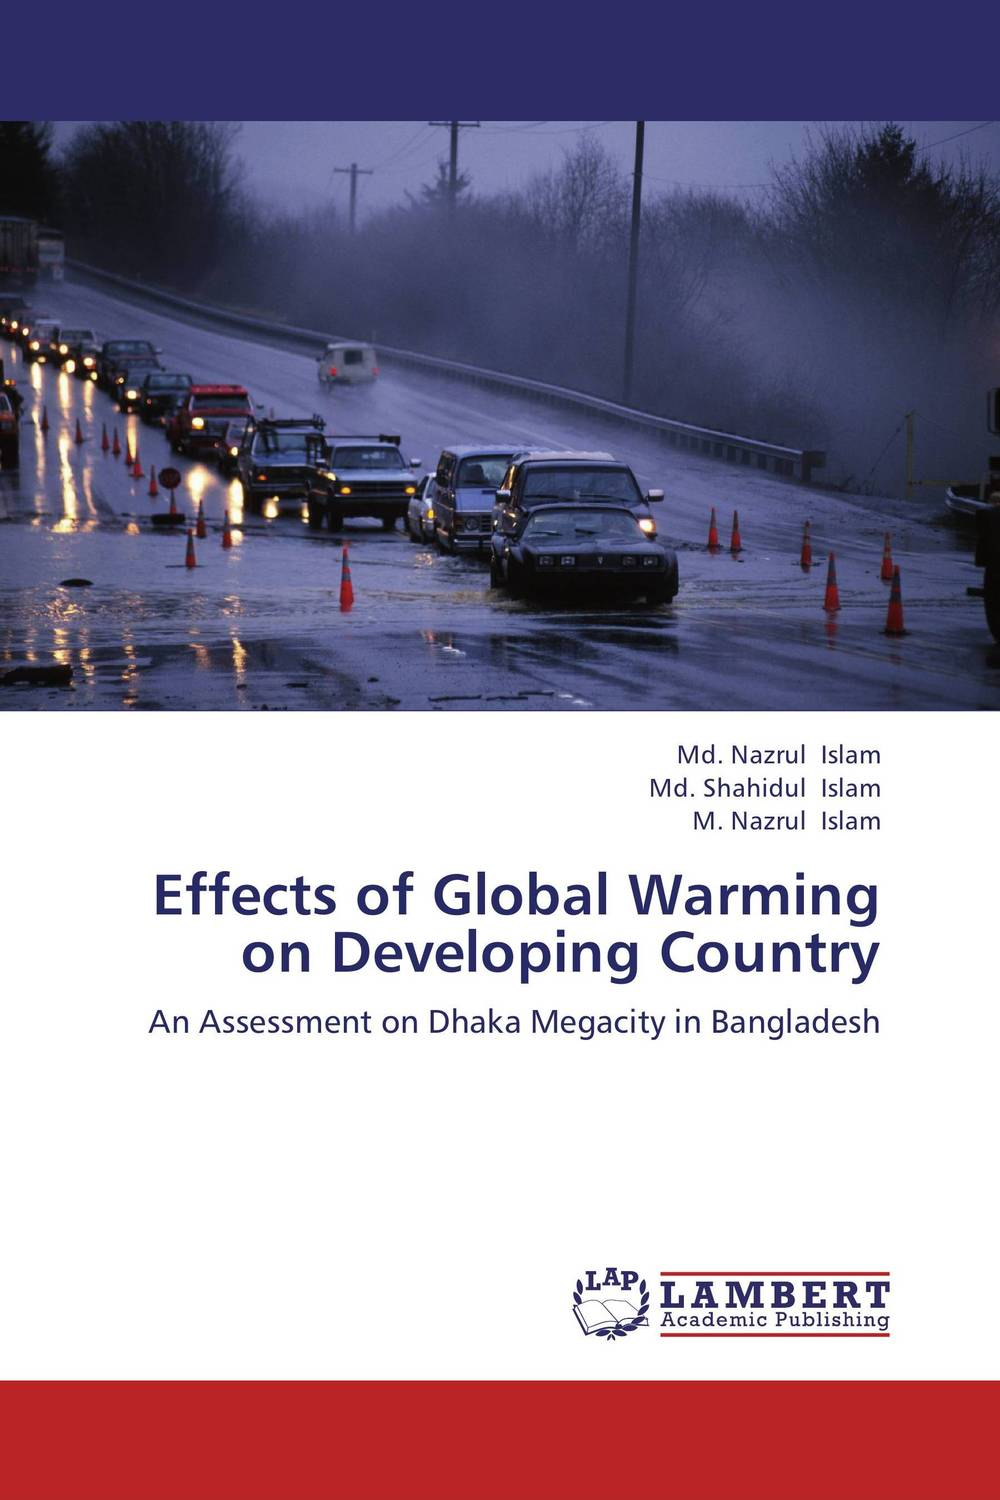 Effects of Global Warming on Developing Country the application of global ethics to solve local improprieties